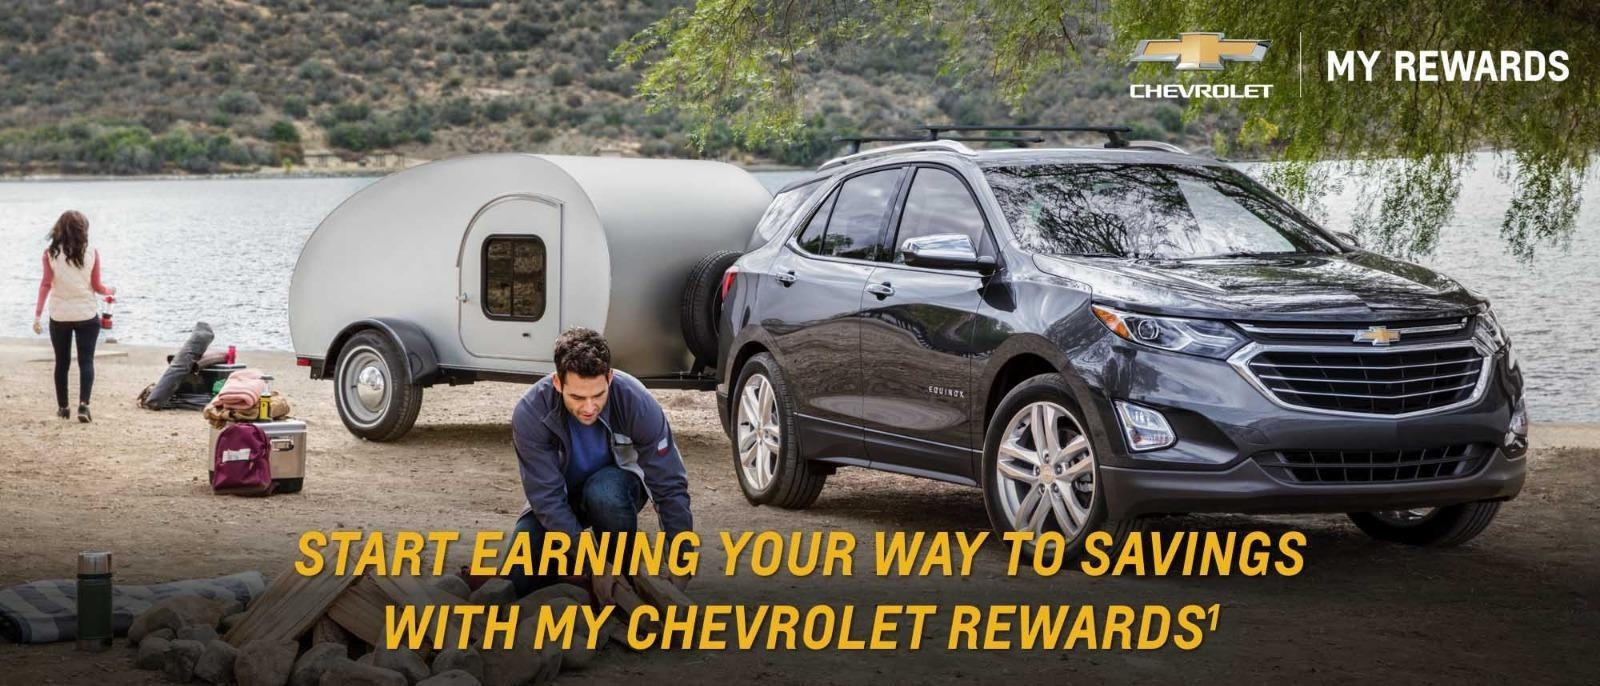 My Chevrolet Rewards